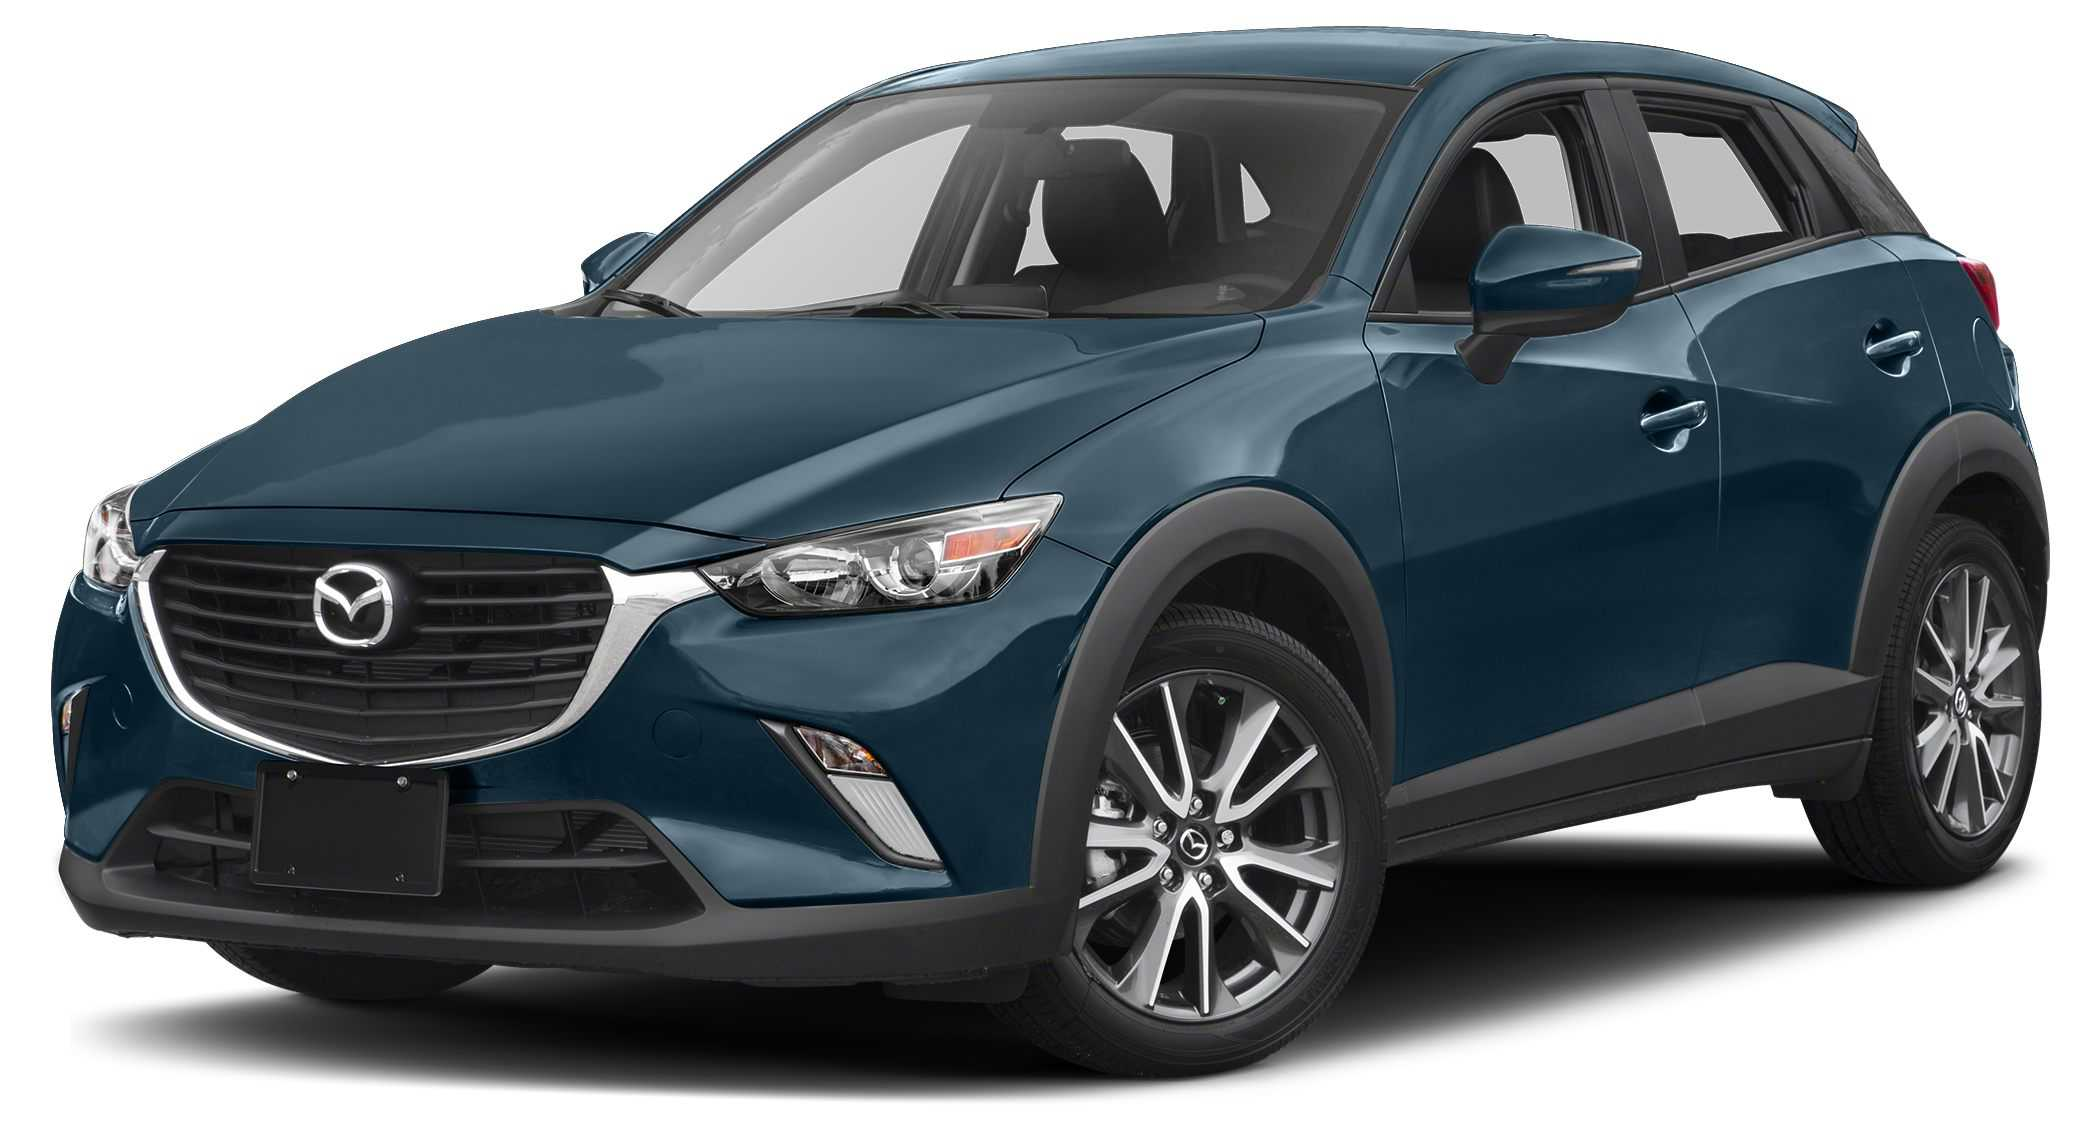 2017 mazda cx 3 for sale in falmouth me jm1dkfc76h0174853. Black Bedroom Furniture Sets. Home Design Ideas